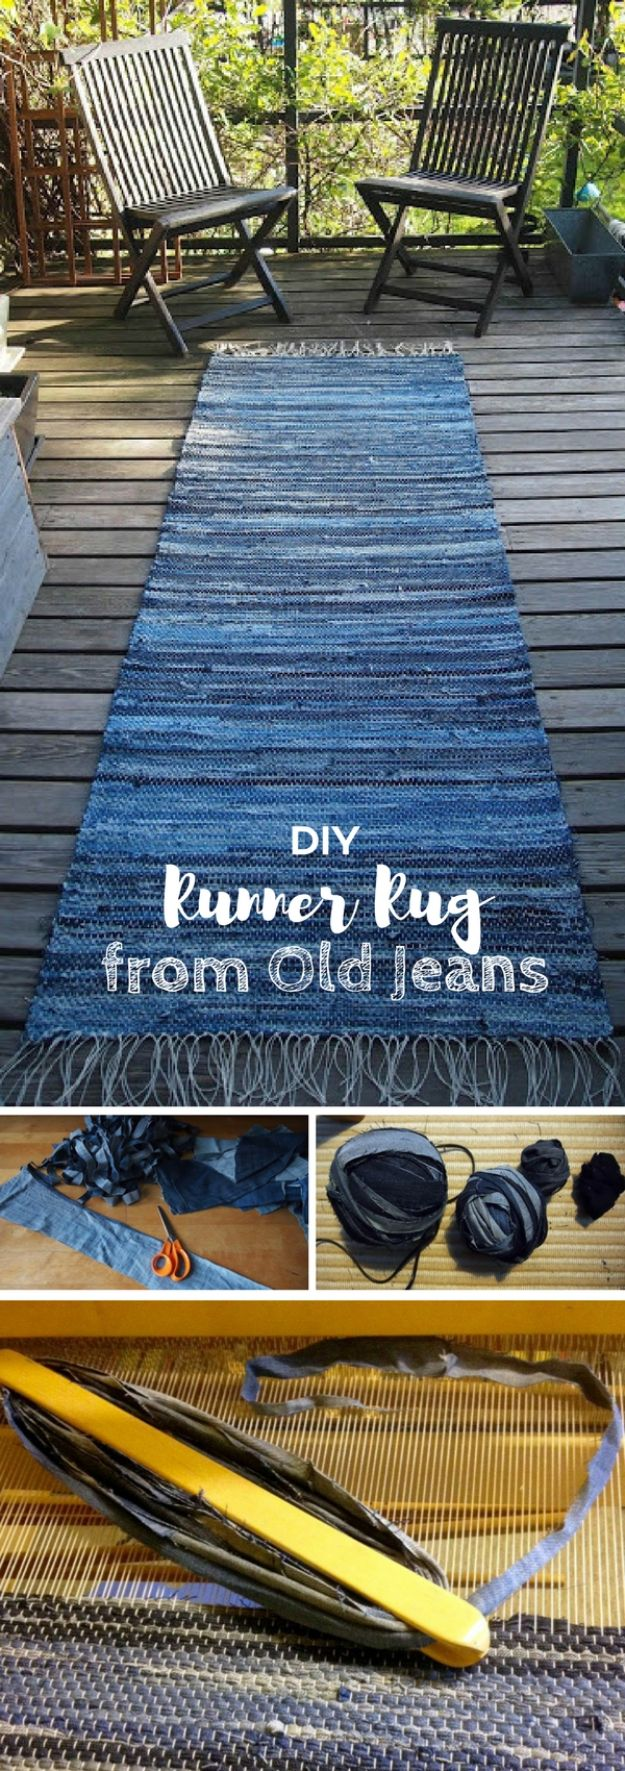 DIY Rugs - Denim Rug From Old Jeans - Ideas for An Easy Handmade Rug for Living Room, Bedroom, Kitchen Mat and Cheap Area Rugs You Can Make - Stencil Art Tutorial, Painting Tips, Fabric, Yarn, Old Denim Jeans, Rope, Tshirt, Pom Pom, Fur, Crochet, Woven and Outdoor Projects - Large and Small Carpet #diyrugs #diyhomedecor